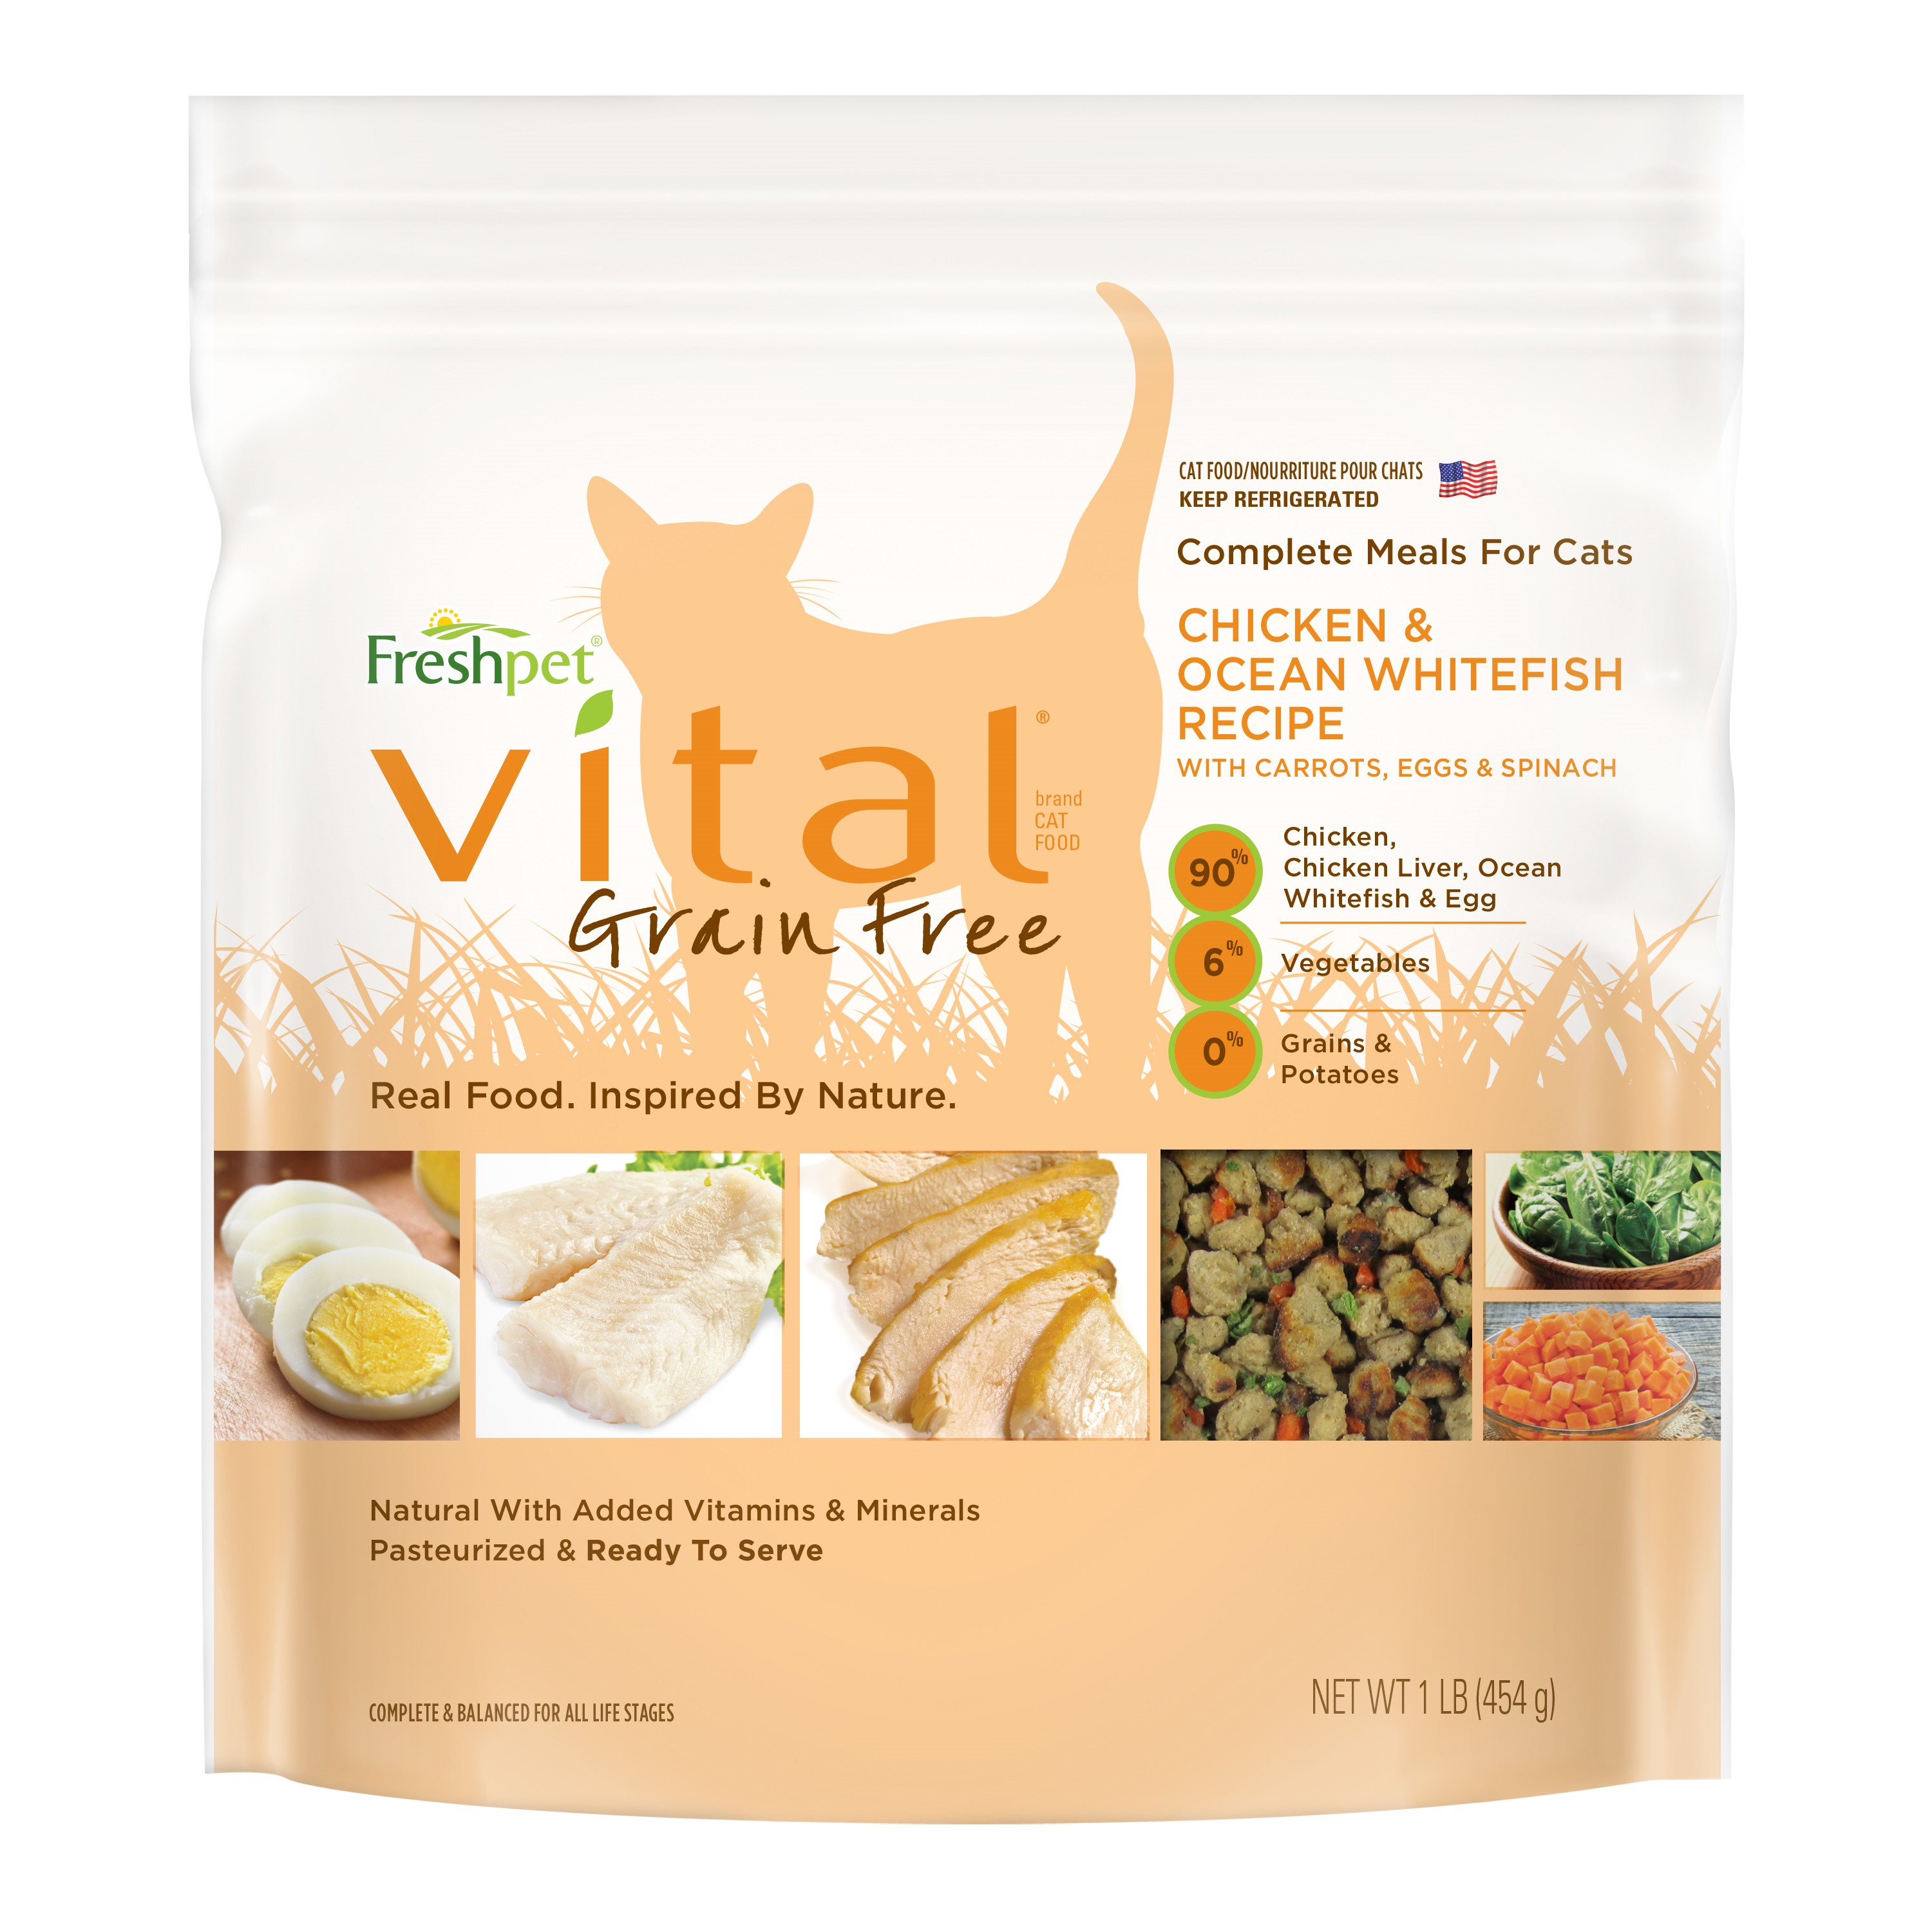 Freshpet vital grain free complete meals for cats 1 lb walmart forumfinder Image collections